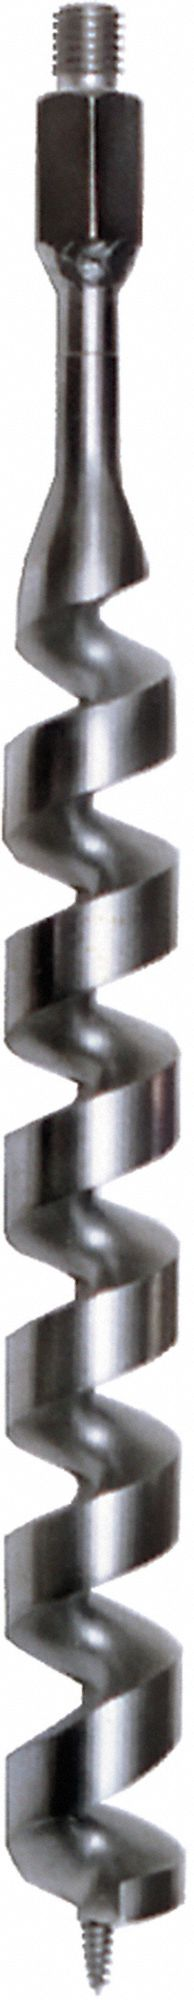 Auger,  1 1/2 in Dia. (In.),  Carbon Steel,  5/8 in Thread